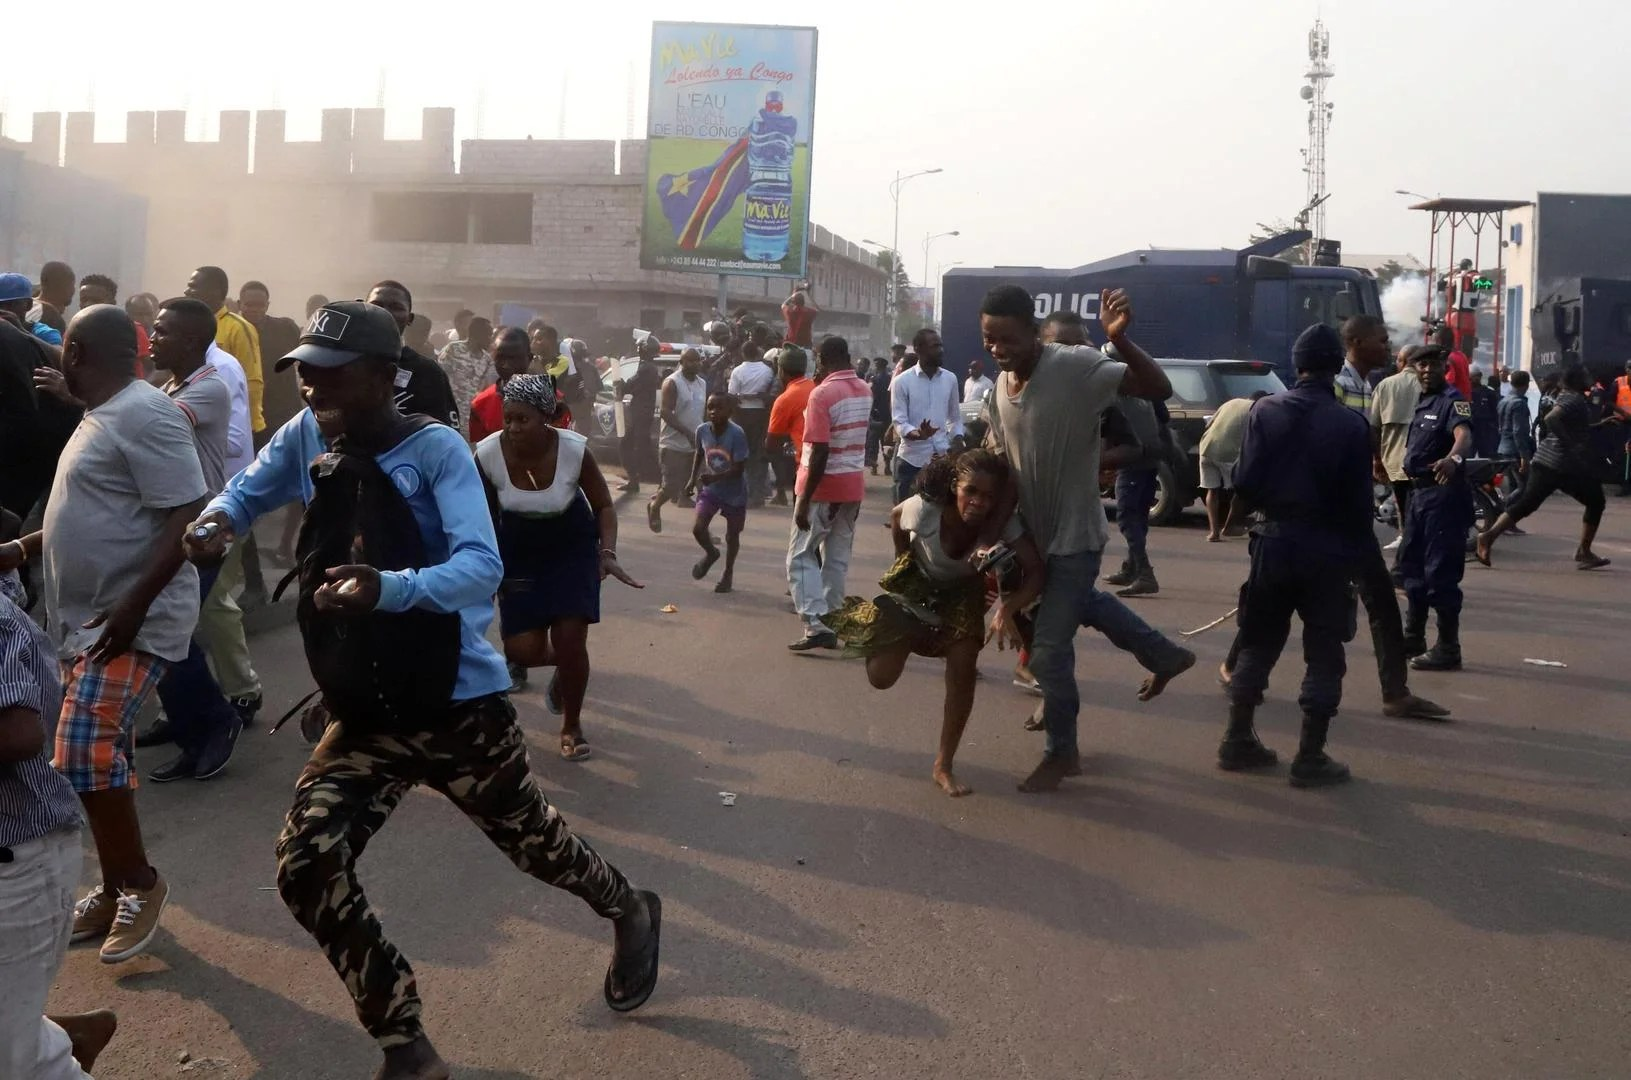 Thousands of opposition activists marched across Democratic Republic of Congo's capital Kinshasa on Monday in renewed protest against the nomination of the election commission's new head. Demonstrators braved rain and a ban on protests because of the COVID-19 outbreak to voice their opposition to the proposed appointment of Ronsard Malonda as president of the Independent […]